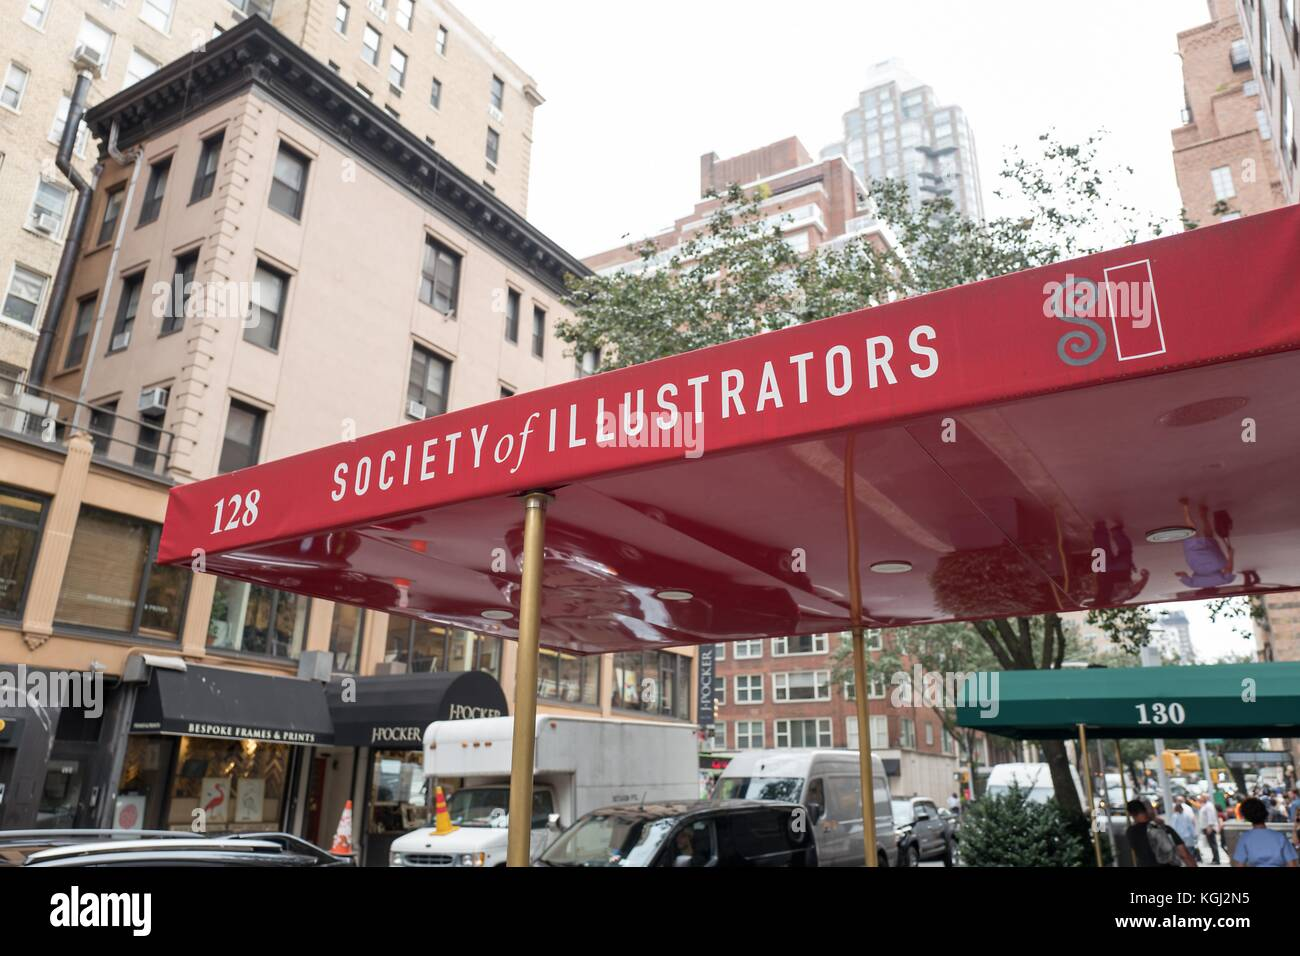 Signage for the Society of Illustrators building, an art organization on the Upper East Side of Manhattan, New York - Stock Image